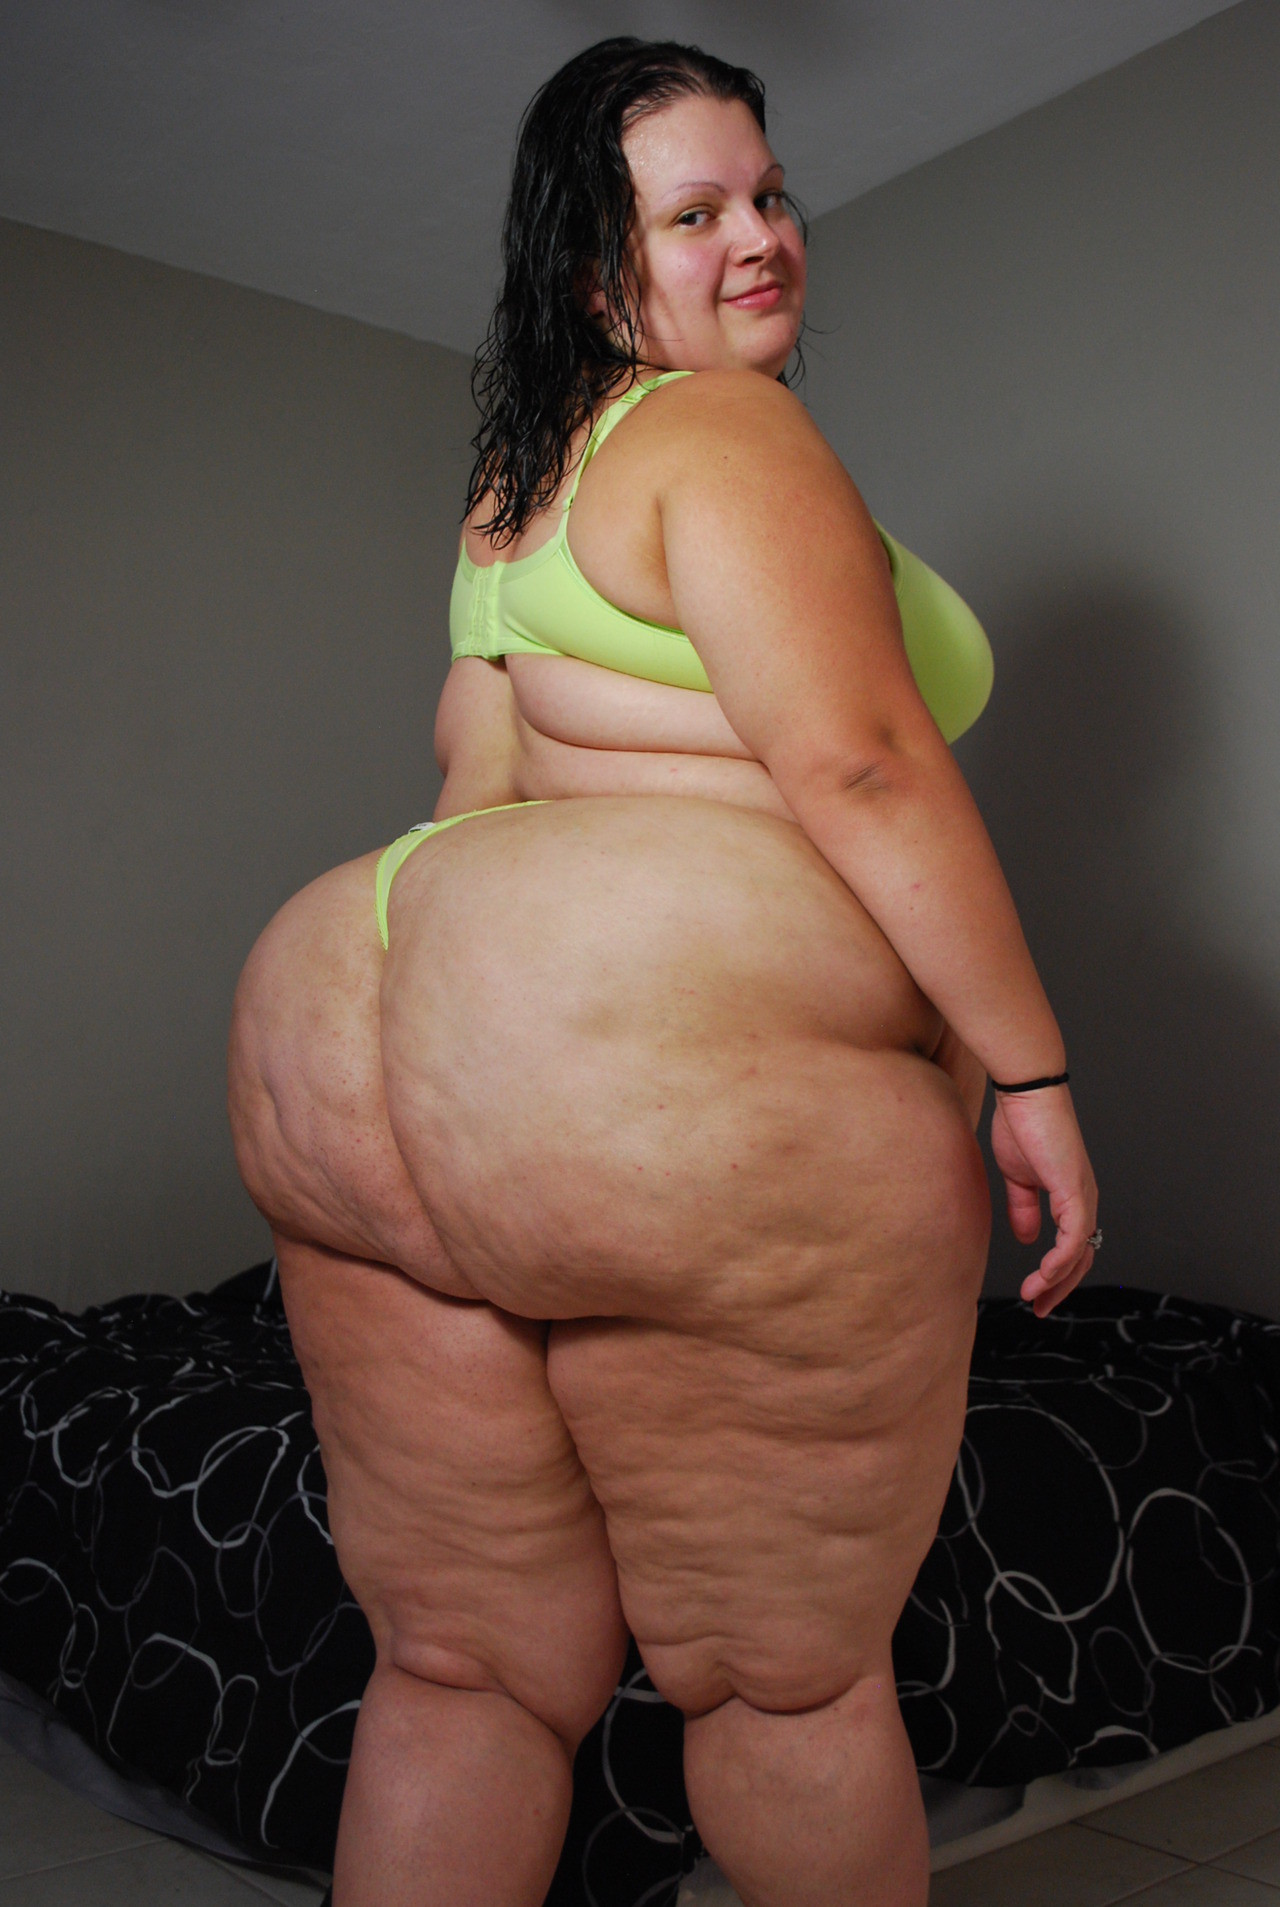 Looks like www.ssbbw big ass in naked